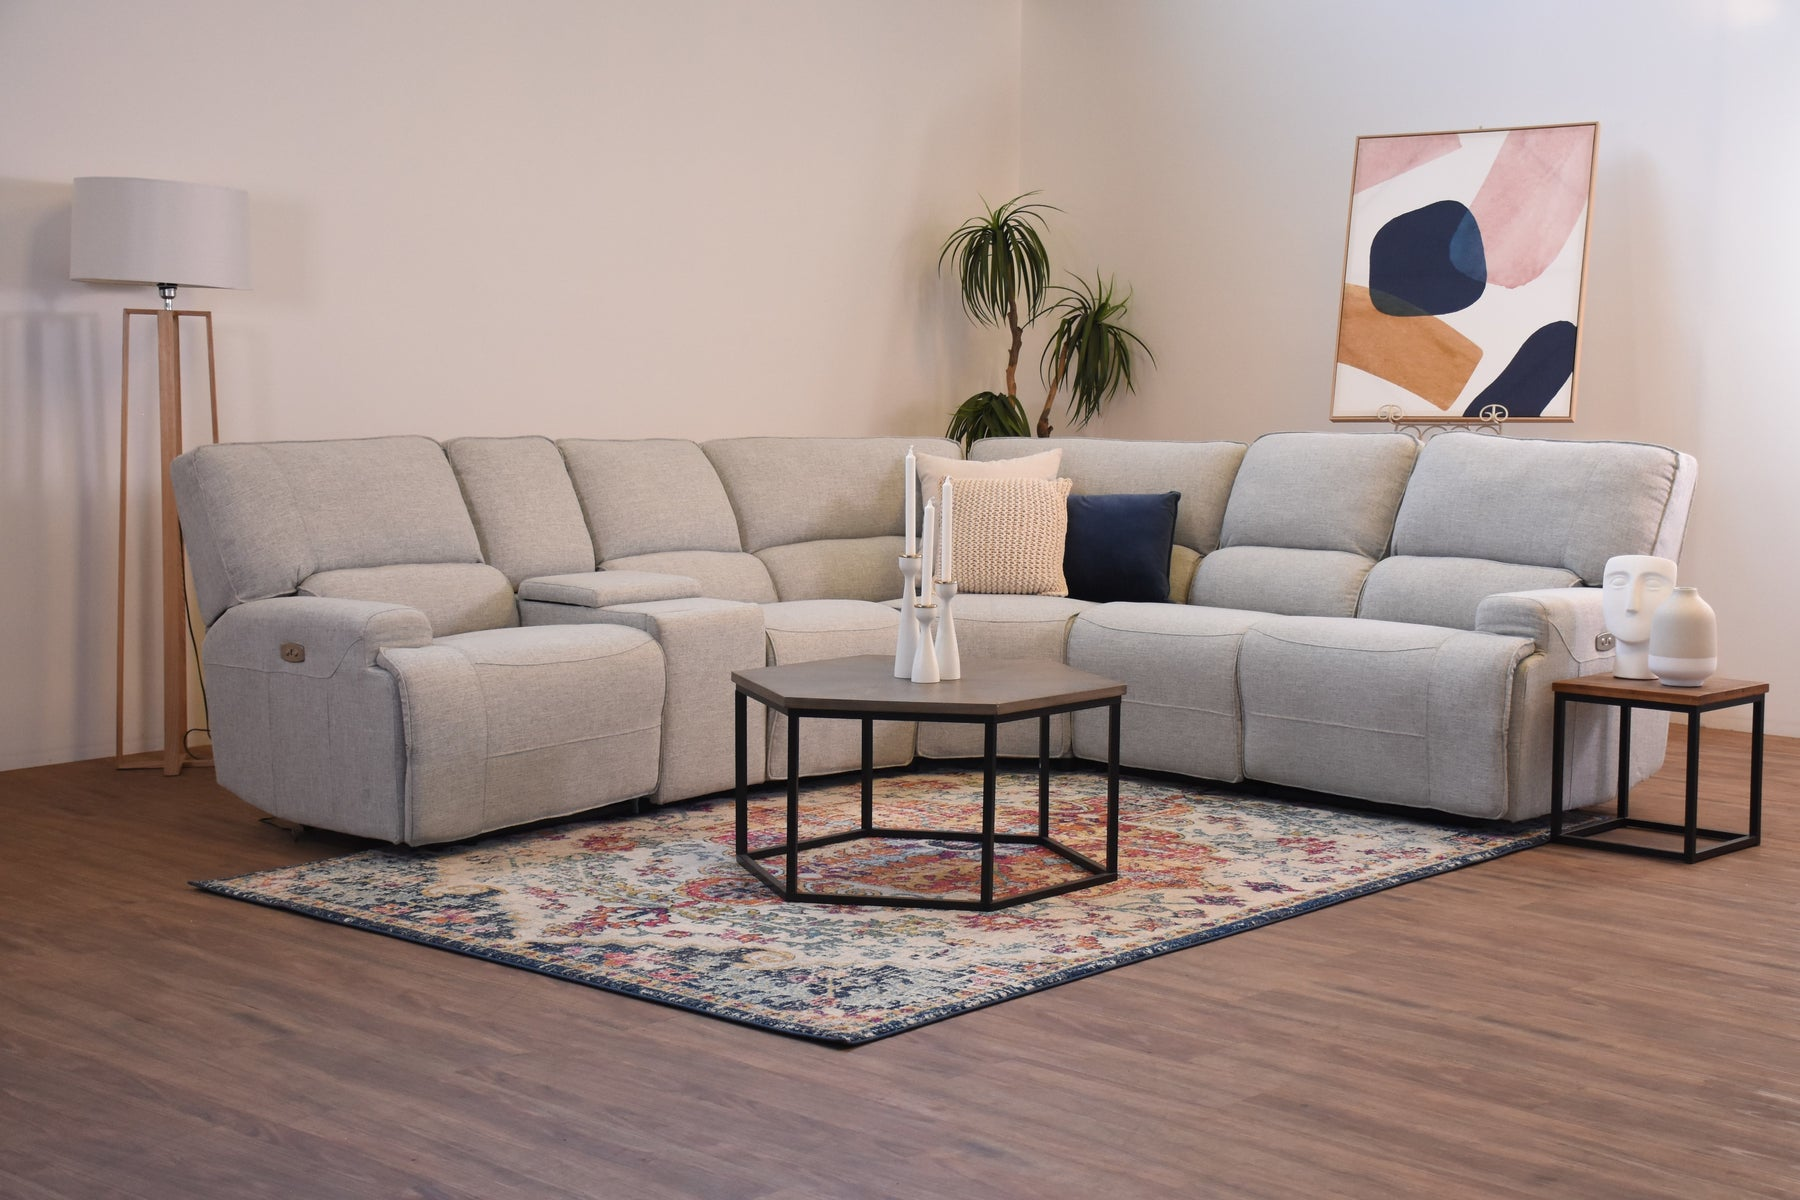 Hemingway Corner Modular With Electric Recliners